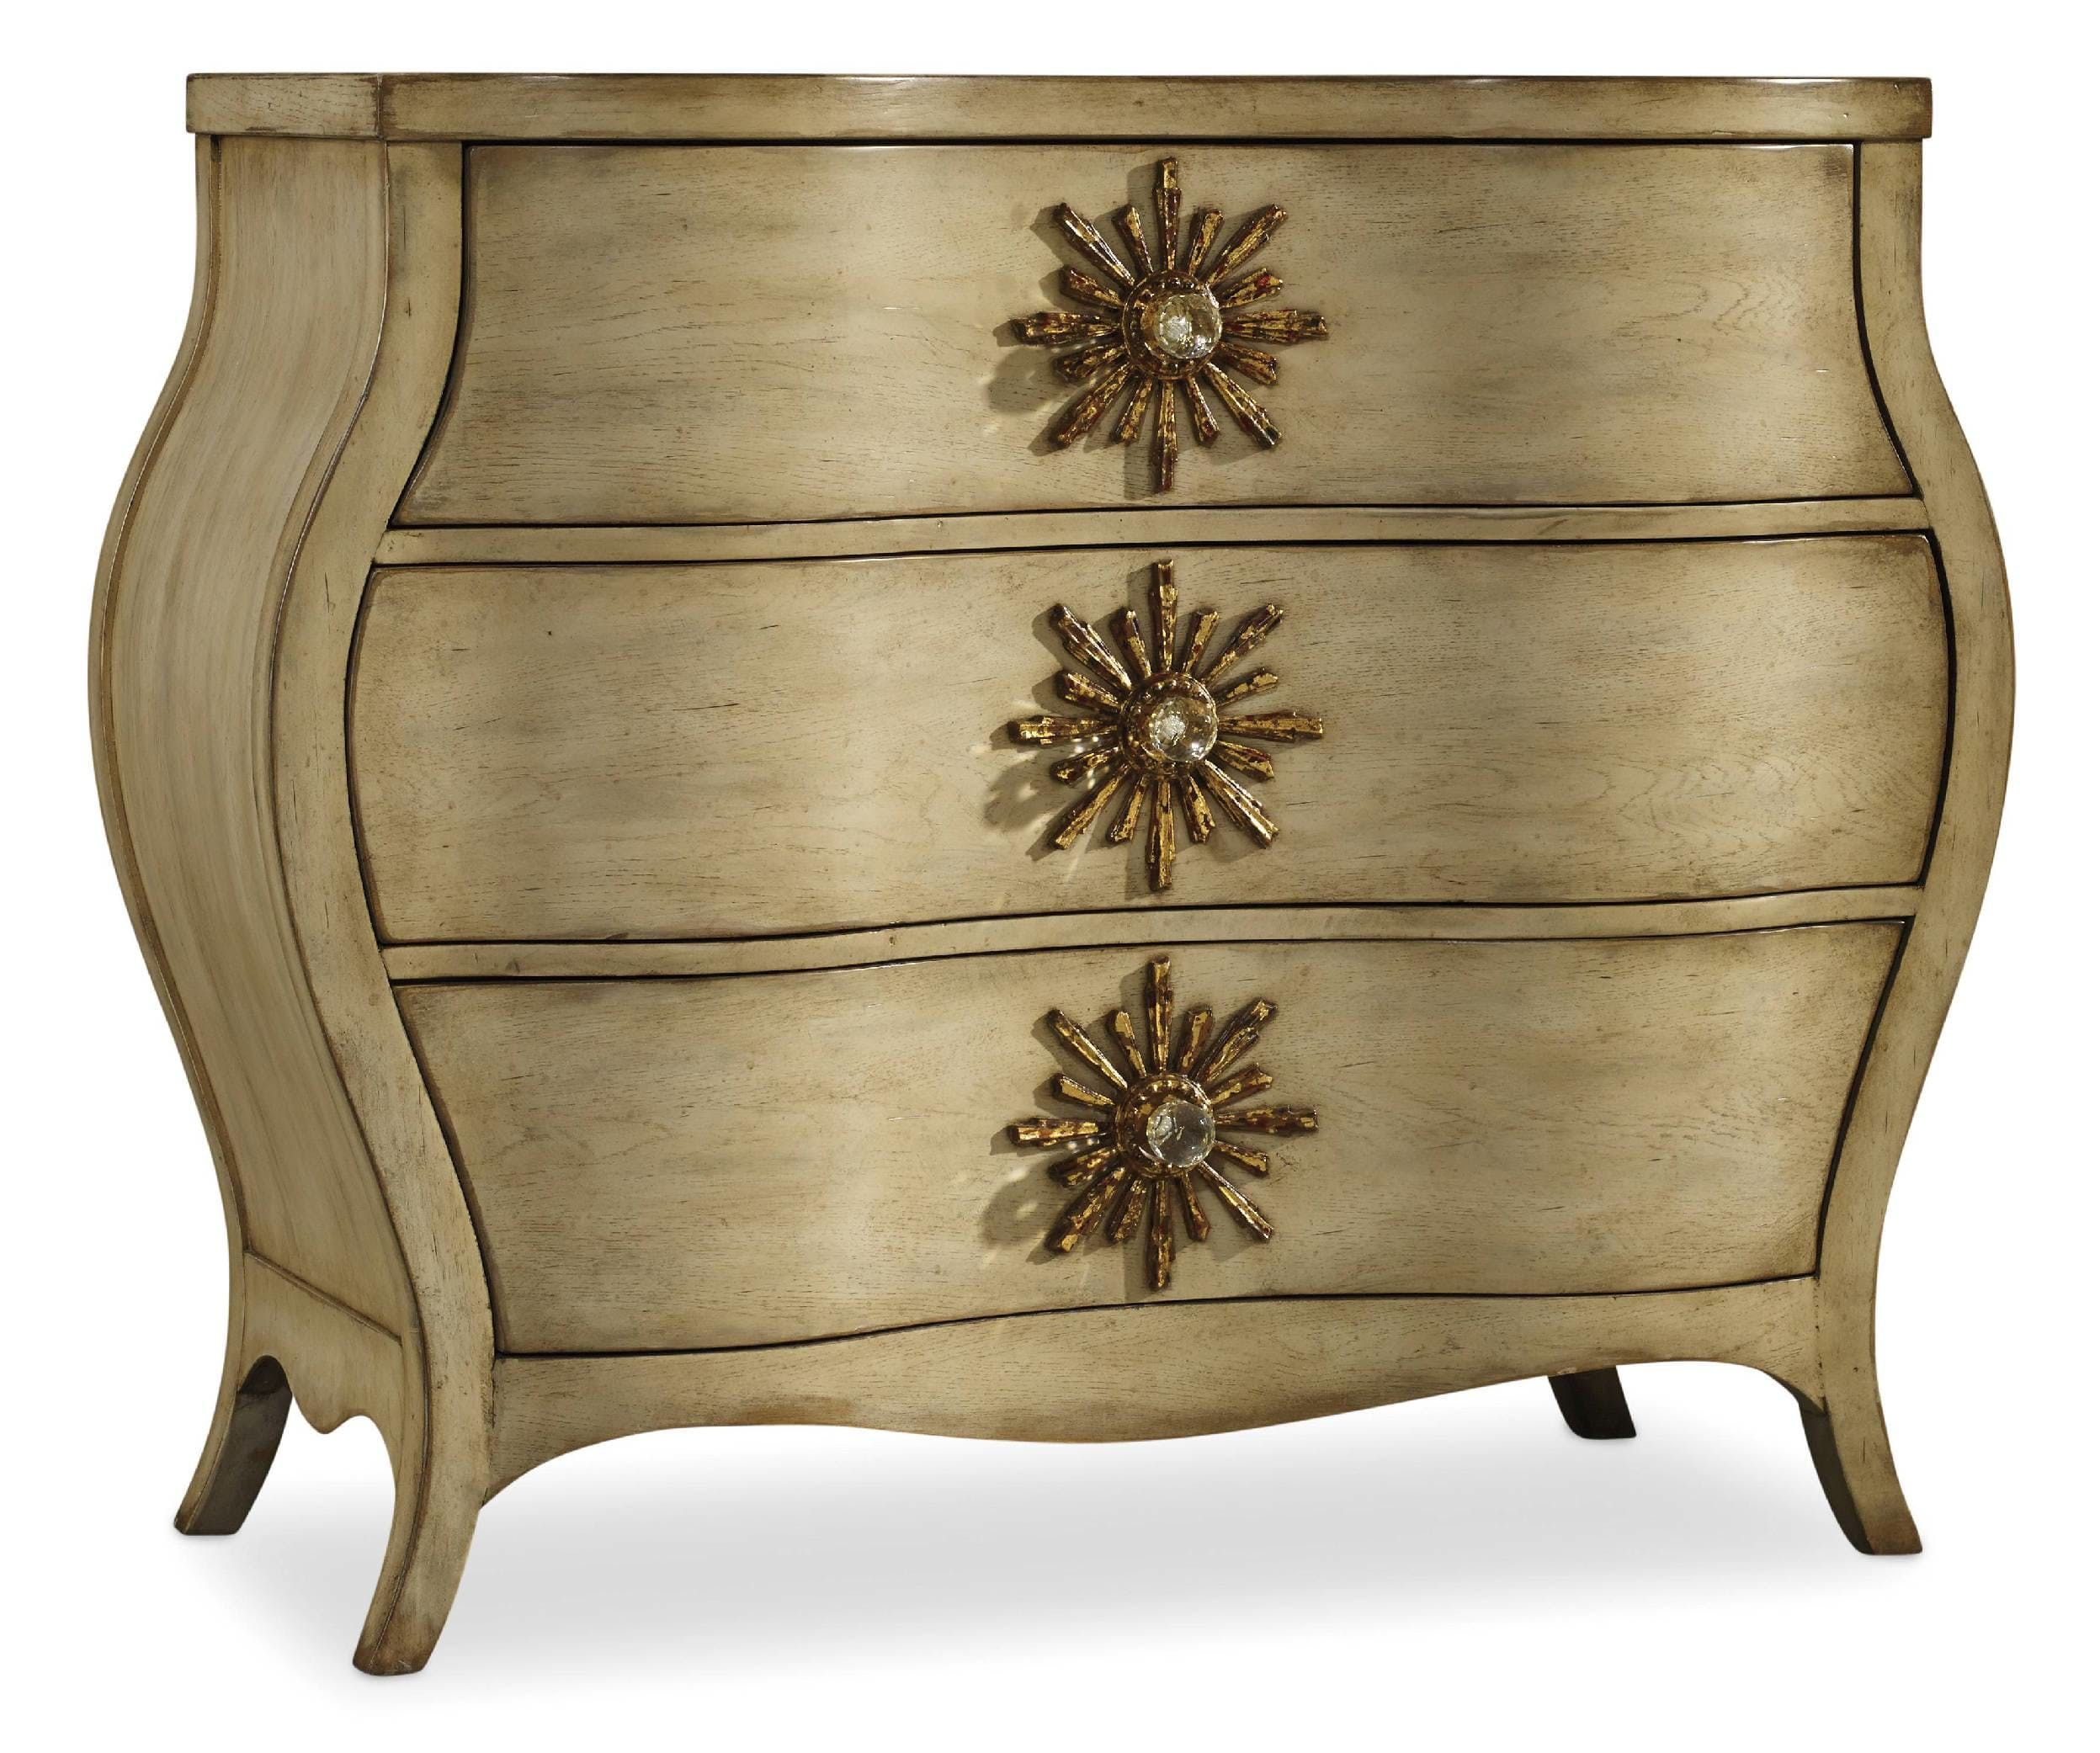 Bombe Bedroom Furniture. bombe furniture chest bombe ...